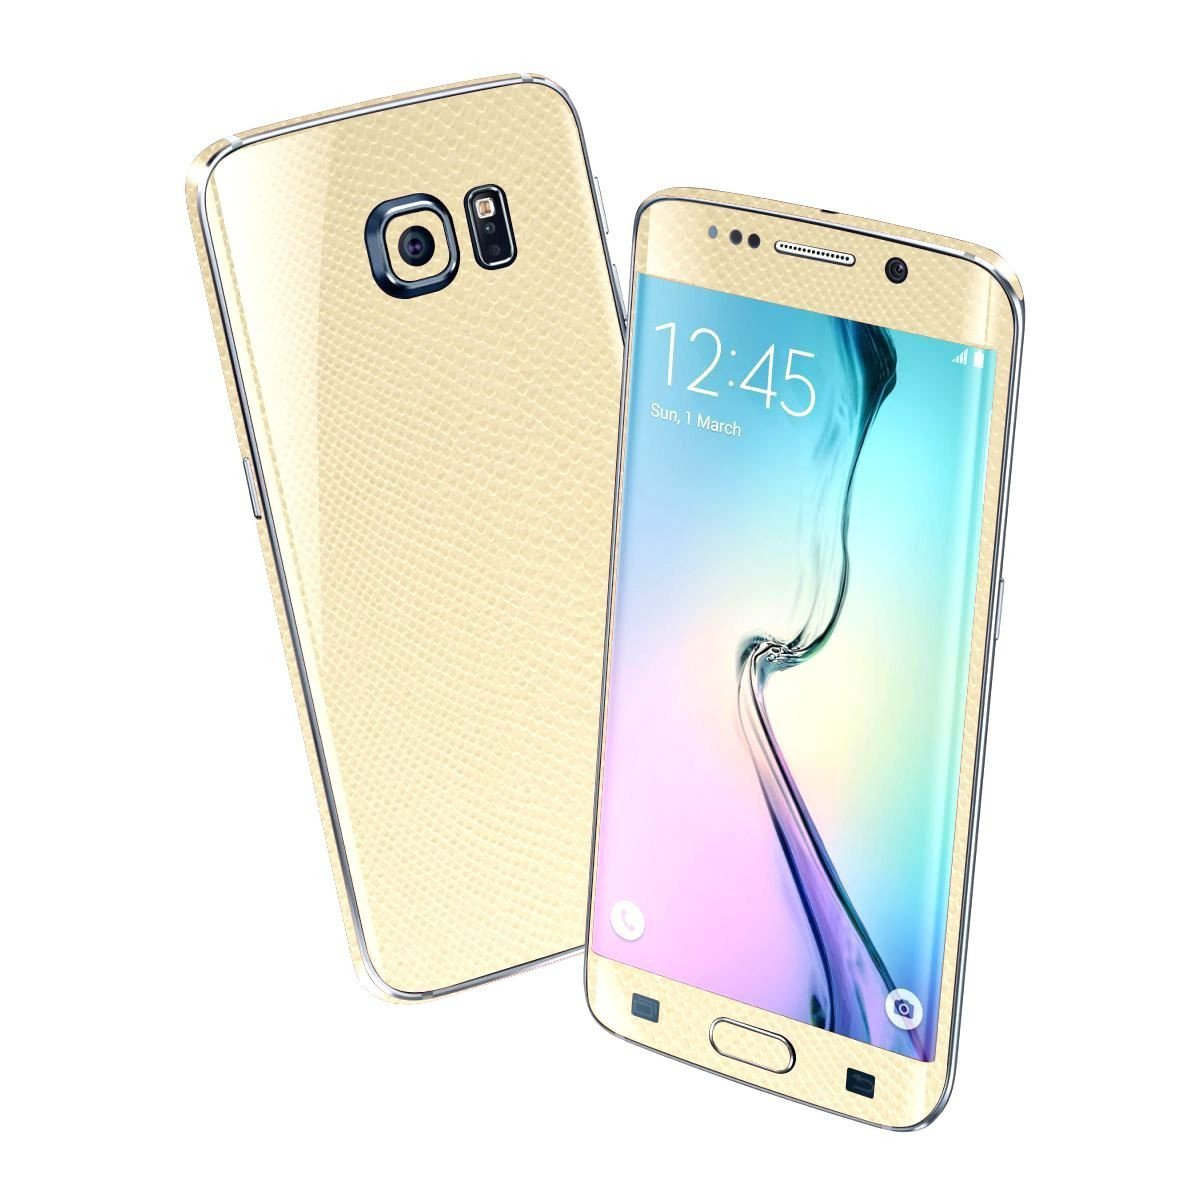 Samsung Galaxy S6 EDGE BEIGE MAMBA SNAKE Skin Wrap Sticker Cover Protector Decal by EasySkinz